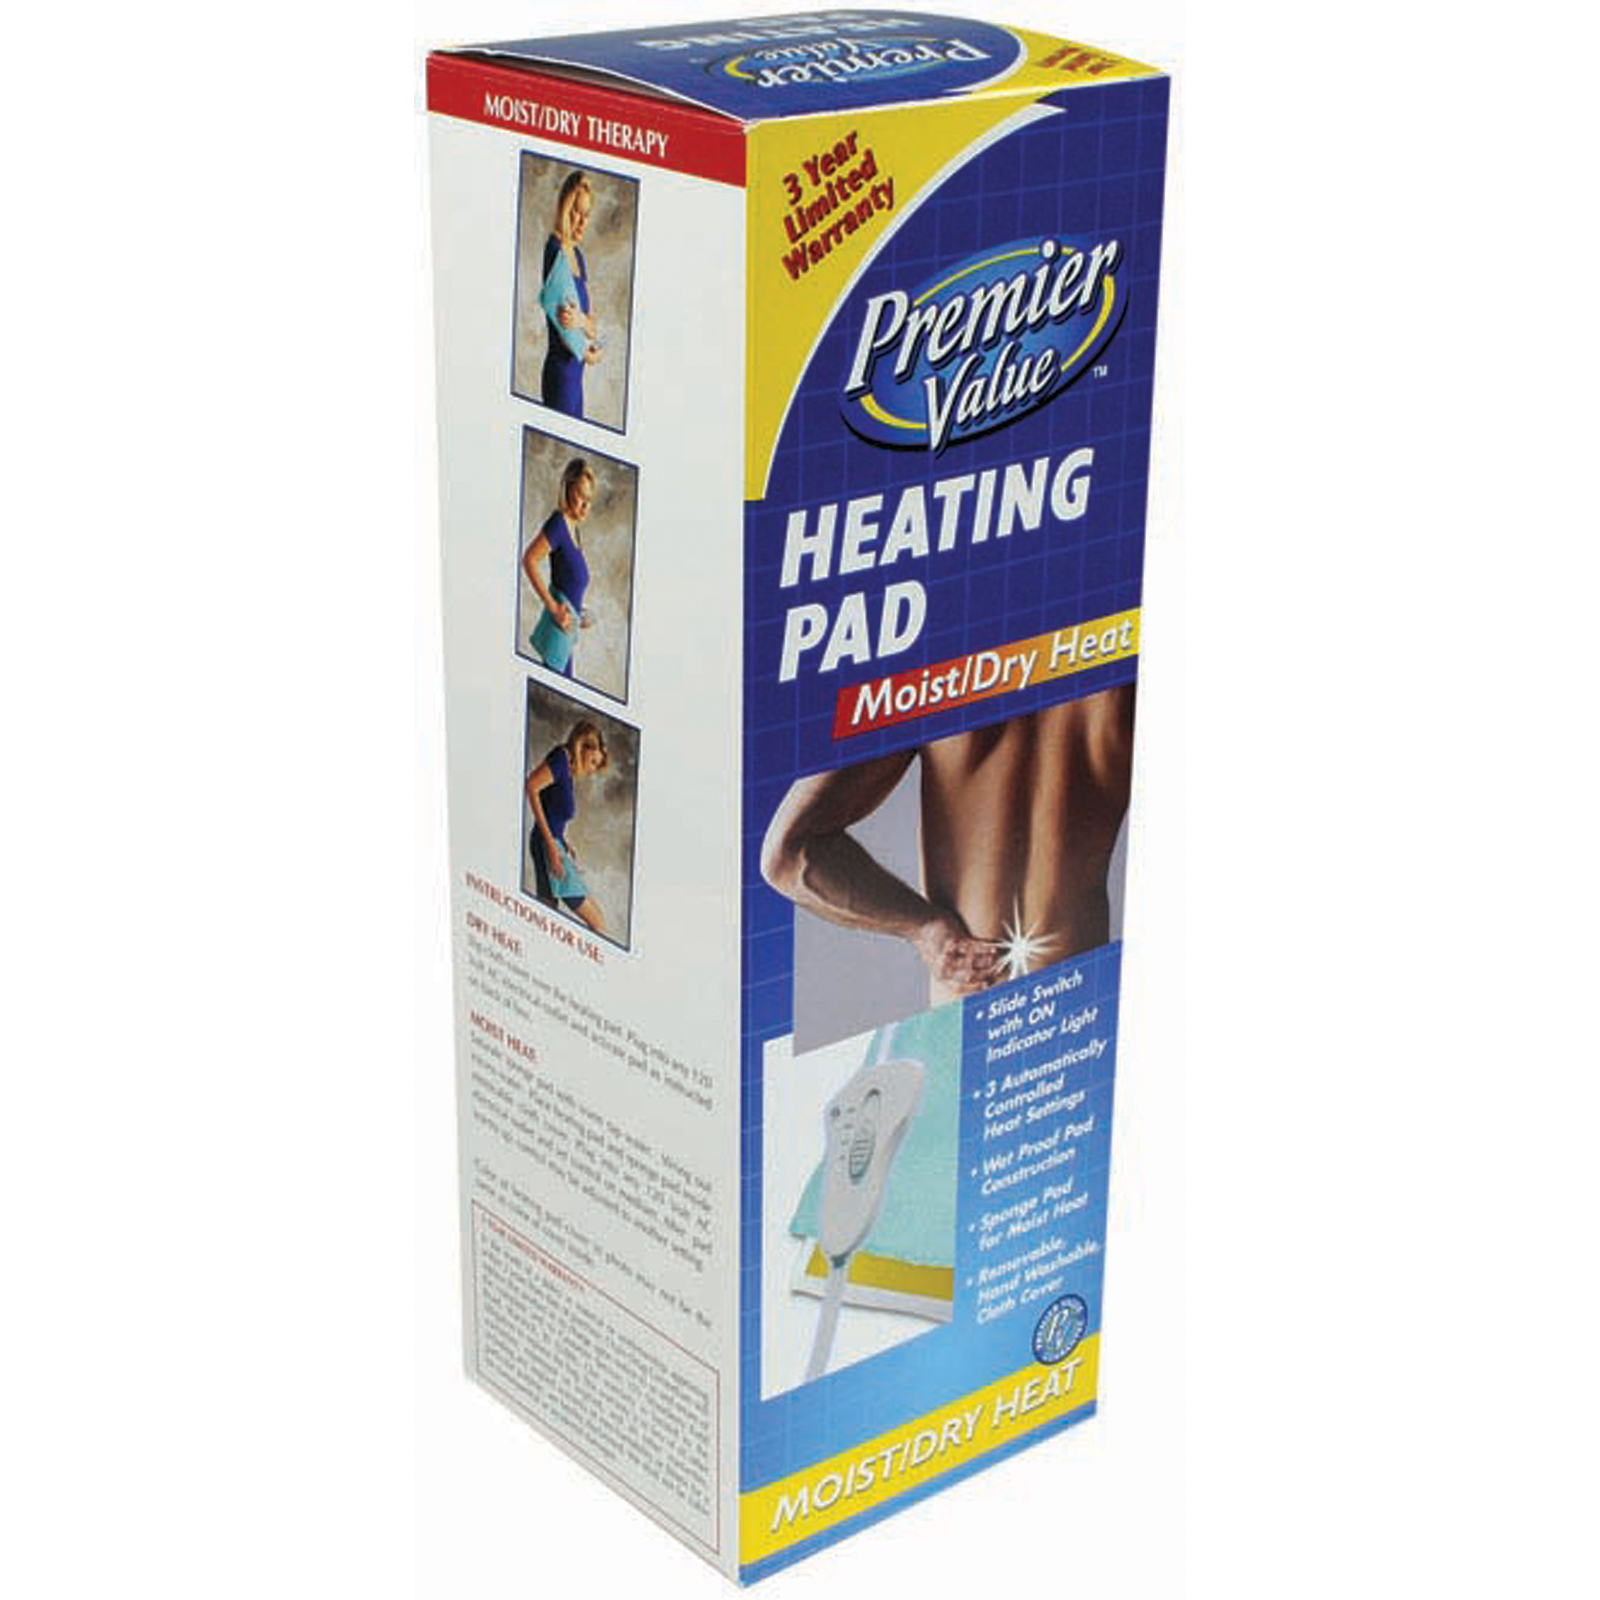 Premier Value Heating Pad Moist/Dry - 1ct